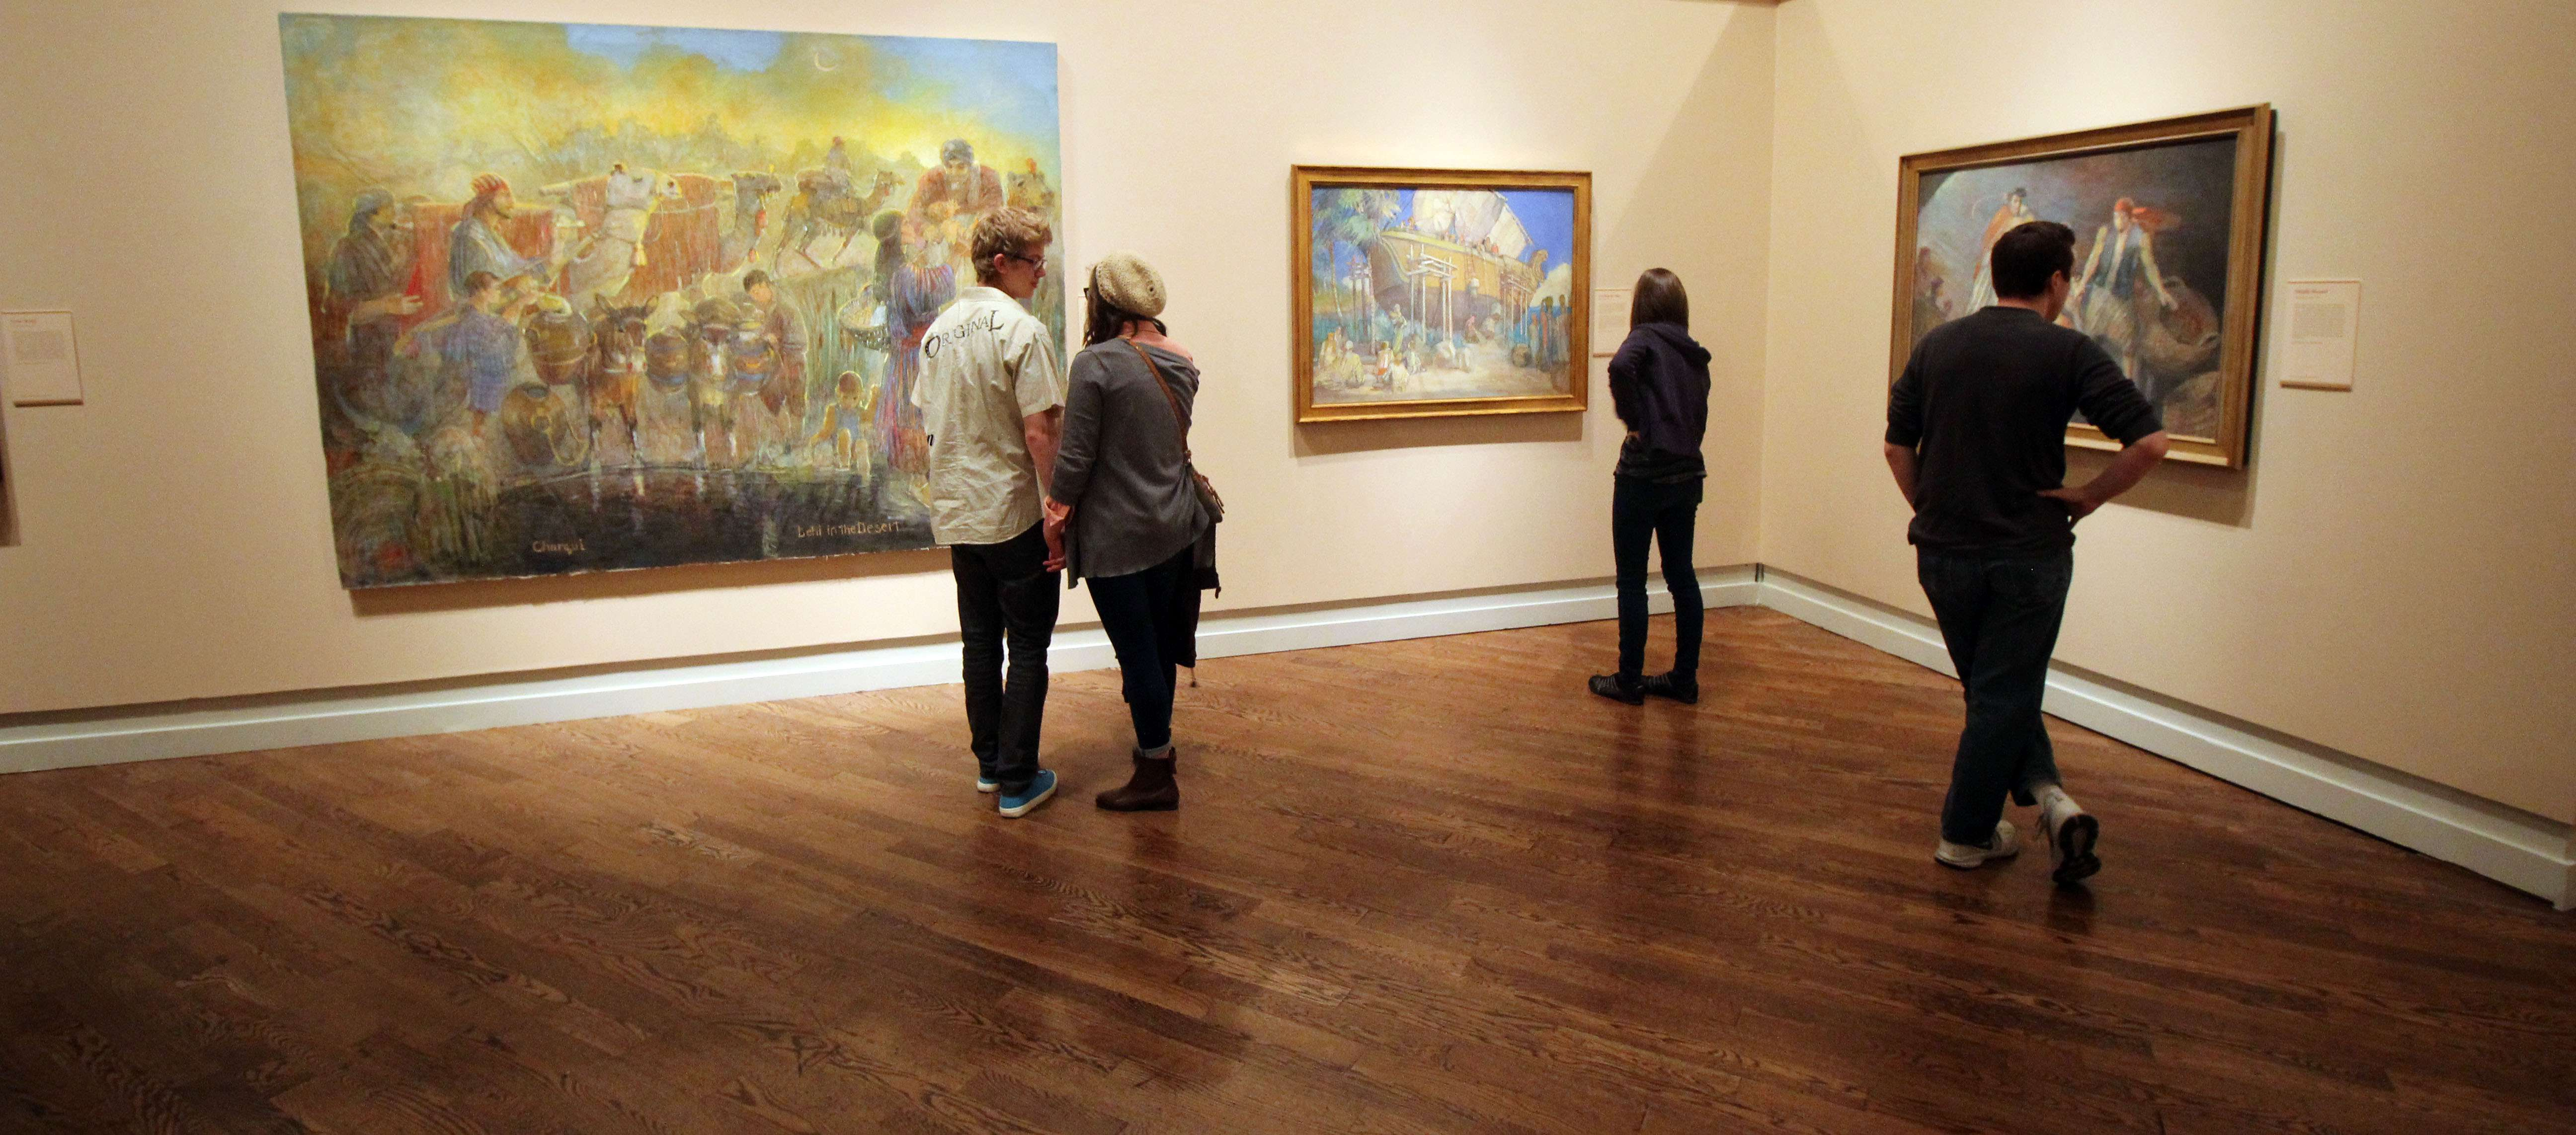 patrons in exhibition